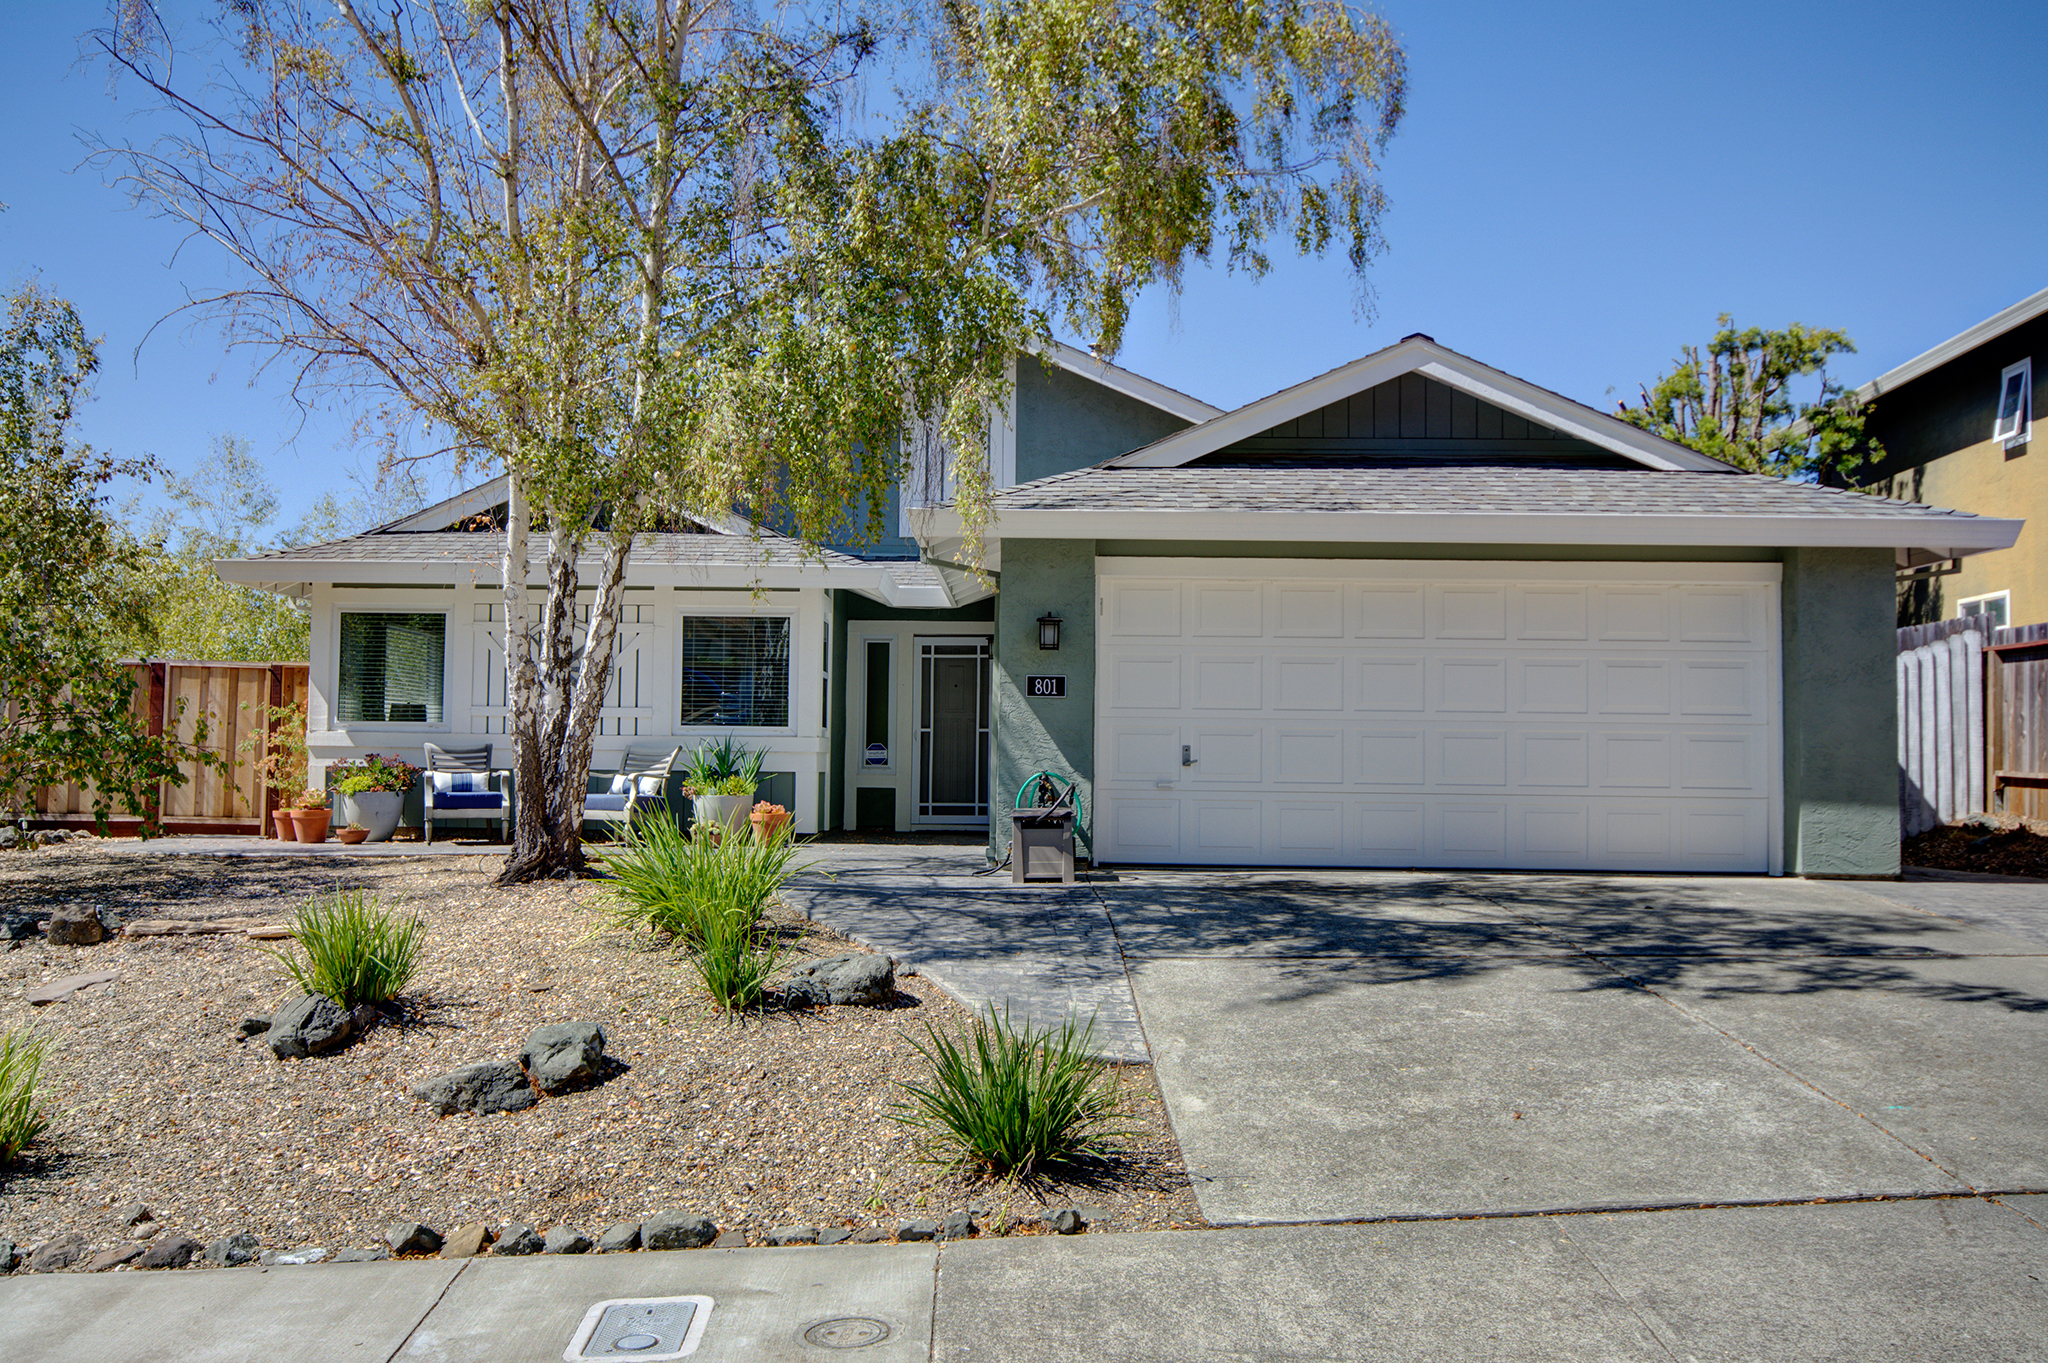 801 Dorset Way, Benicia CA 94510